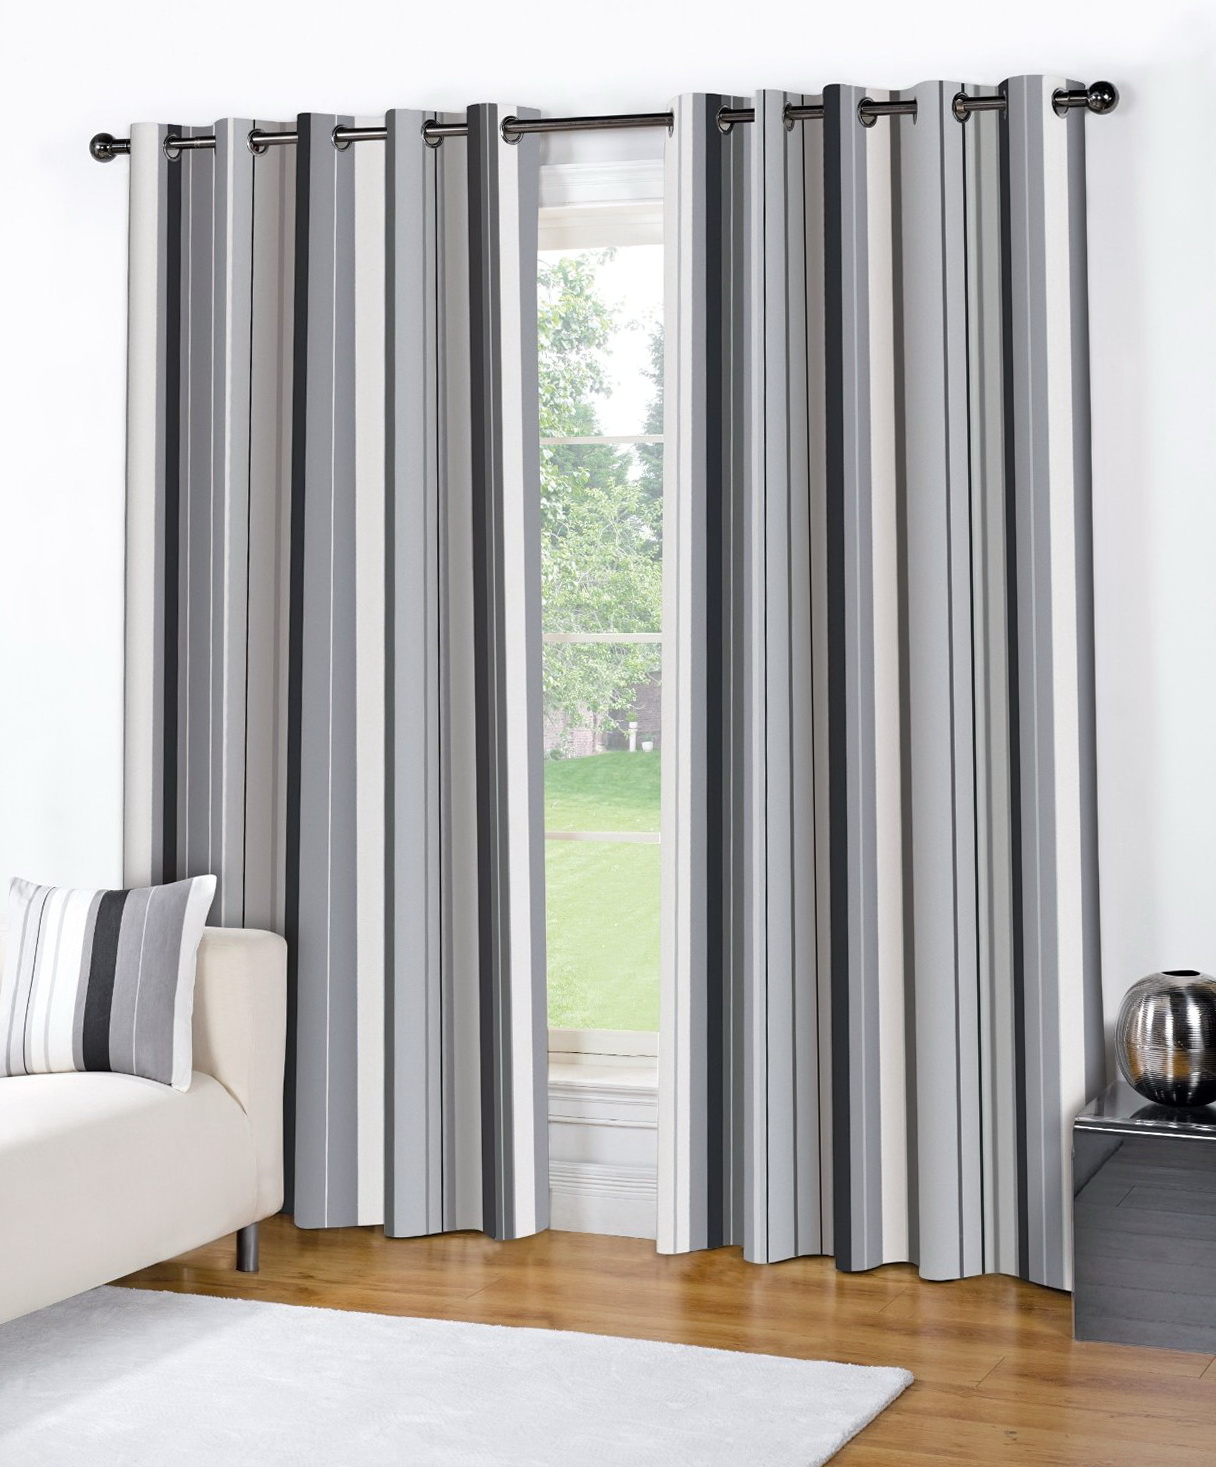 Striped Curtains Horizontal Or Vertical Home Design Ideas